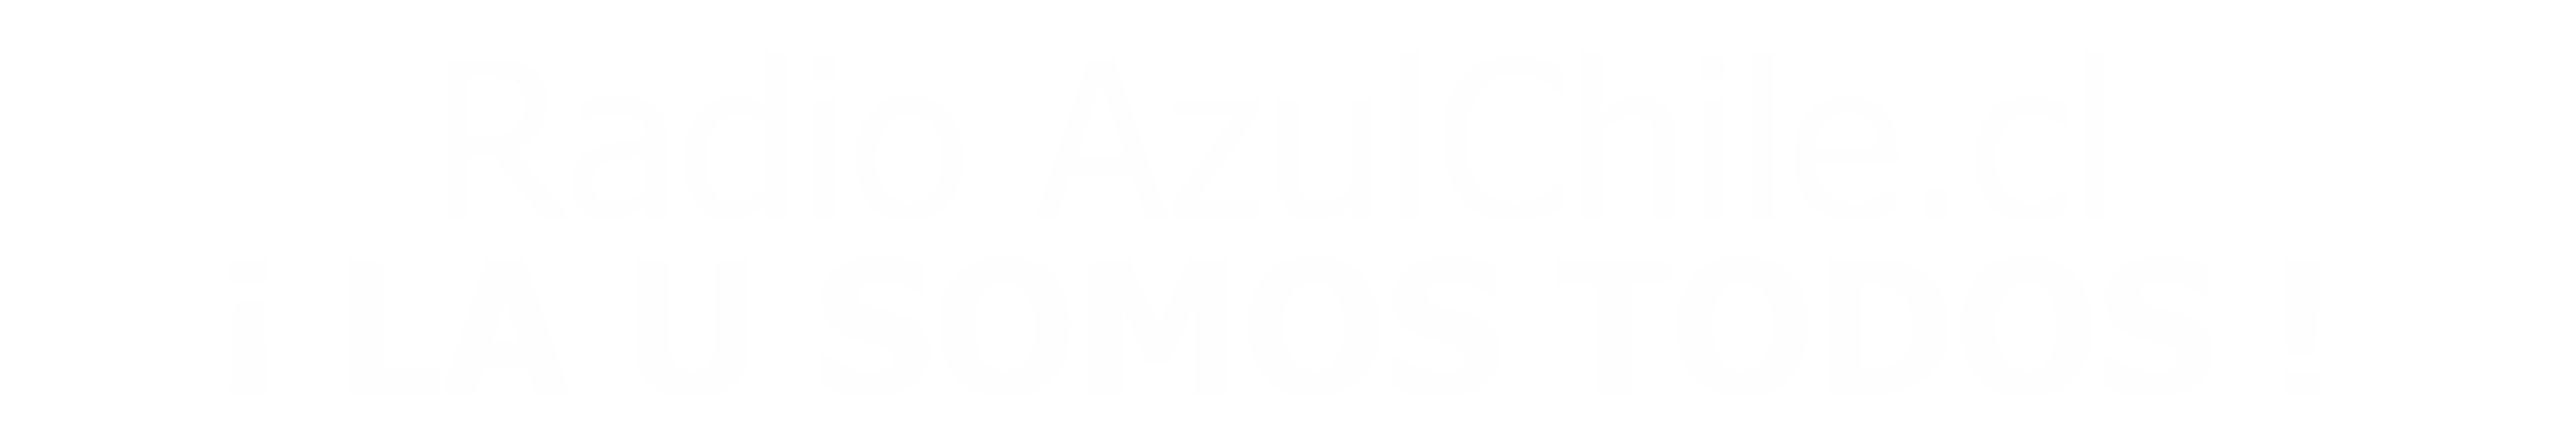 Radio Azul copia